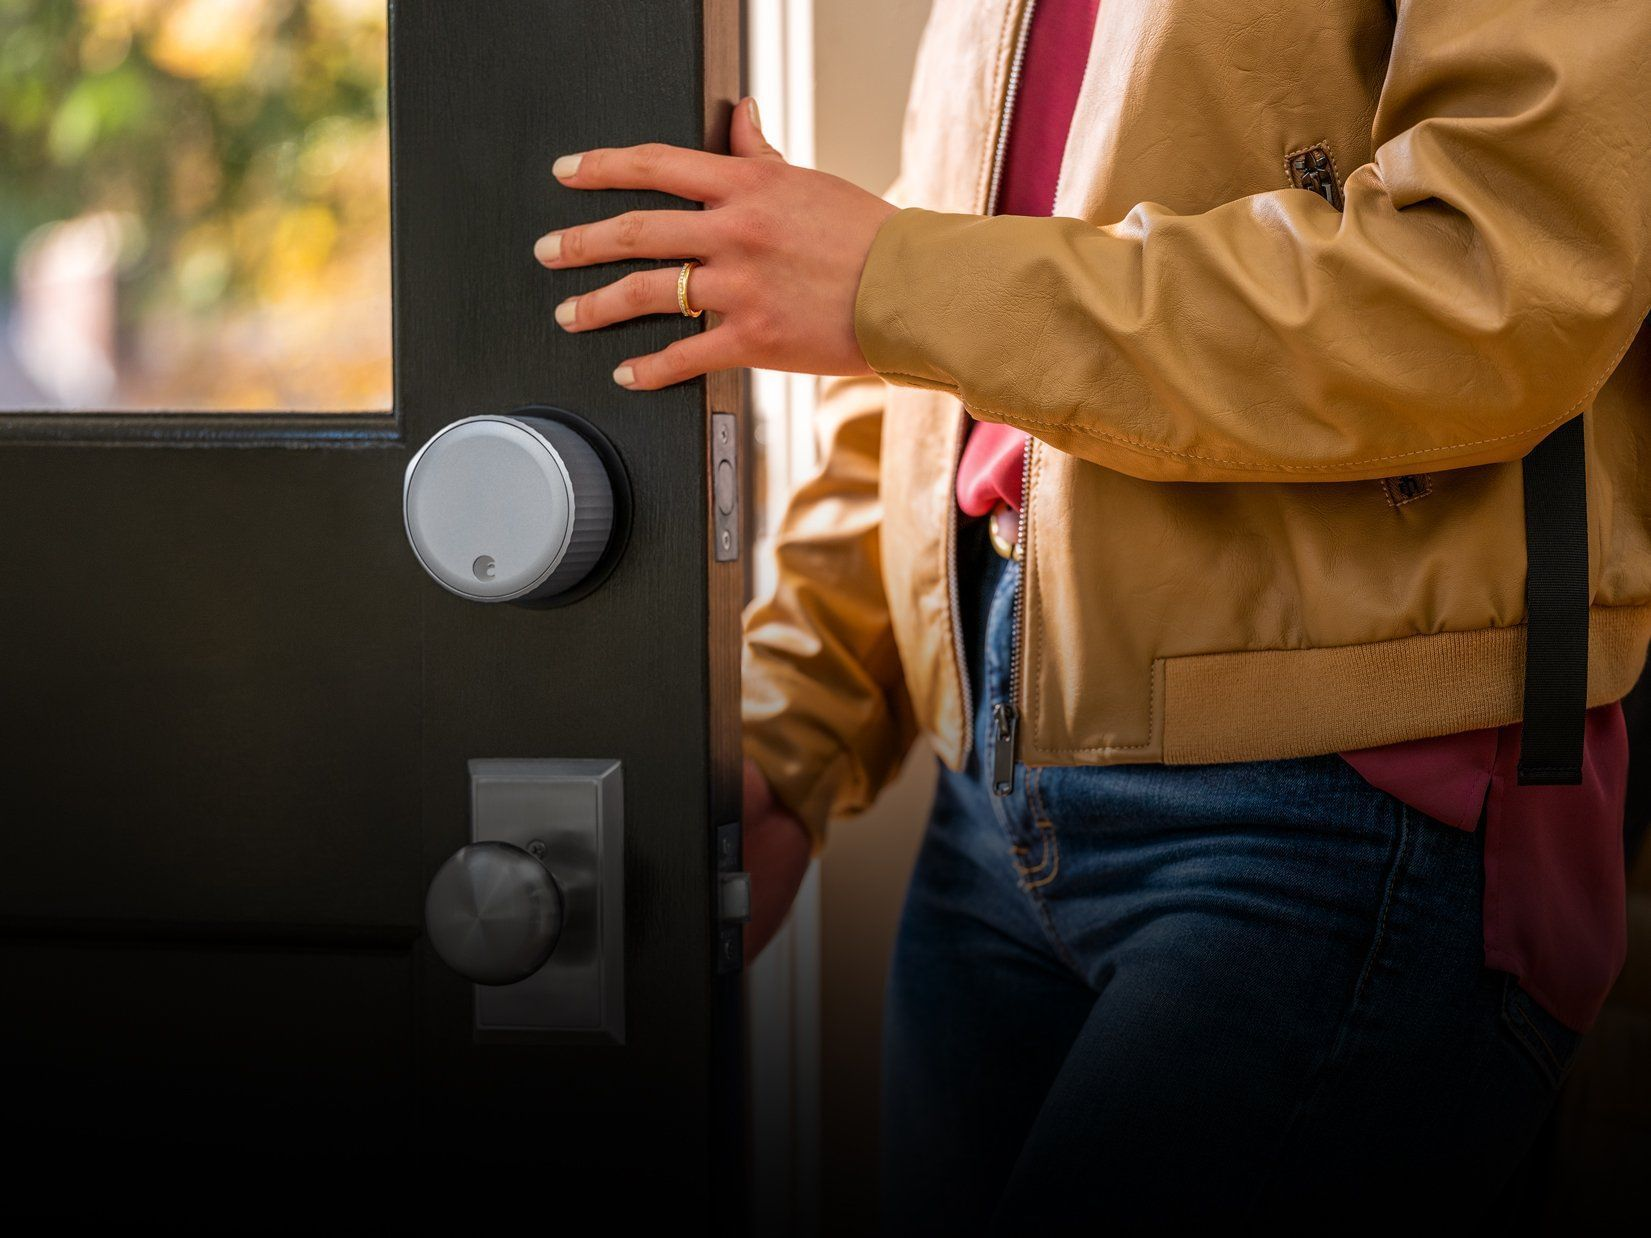 smart lock for door to purchase for your home